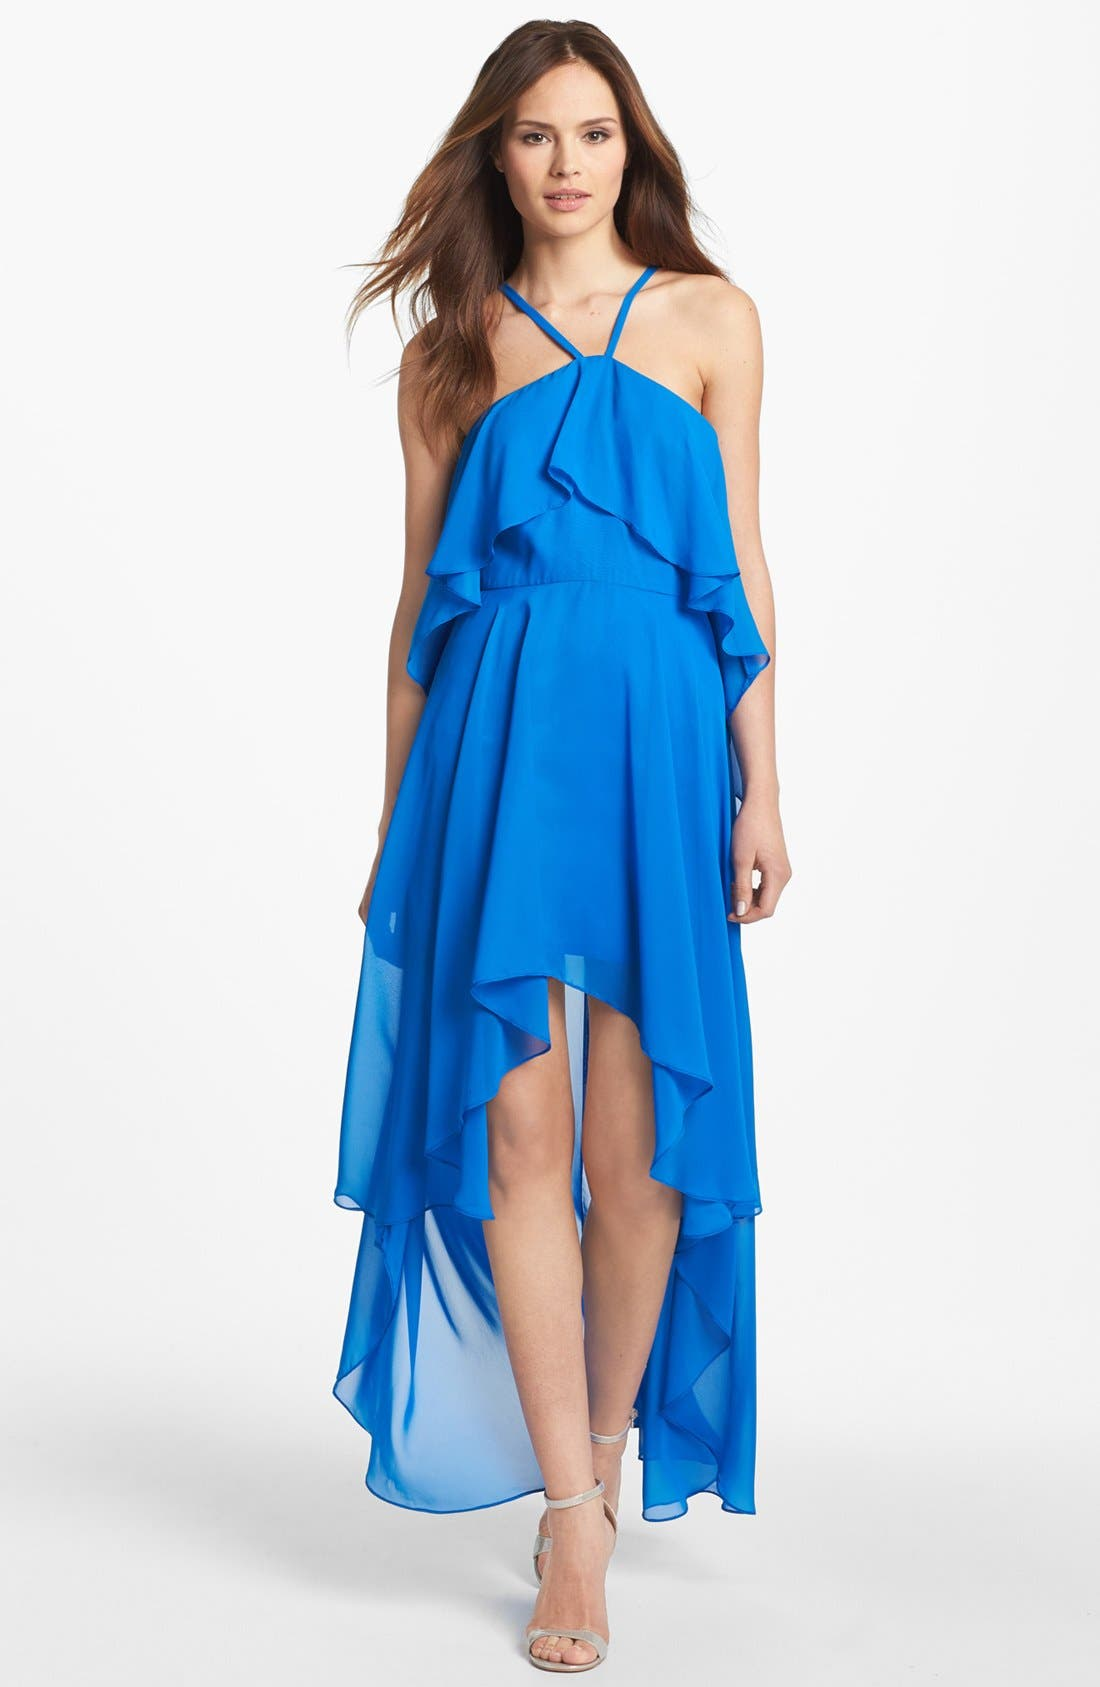 Alternate Image 1 Selected - Hailey by Adrianna Papell Ruffled High/Low Chiffon Dress (Online Only)